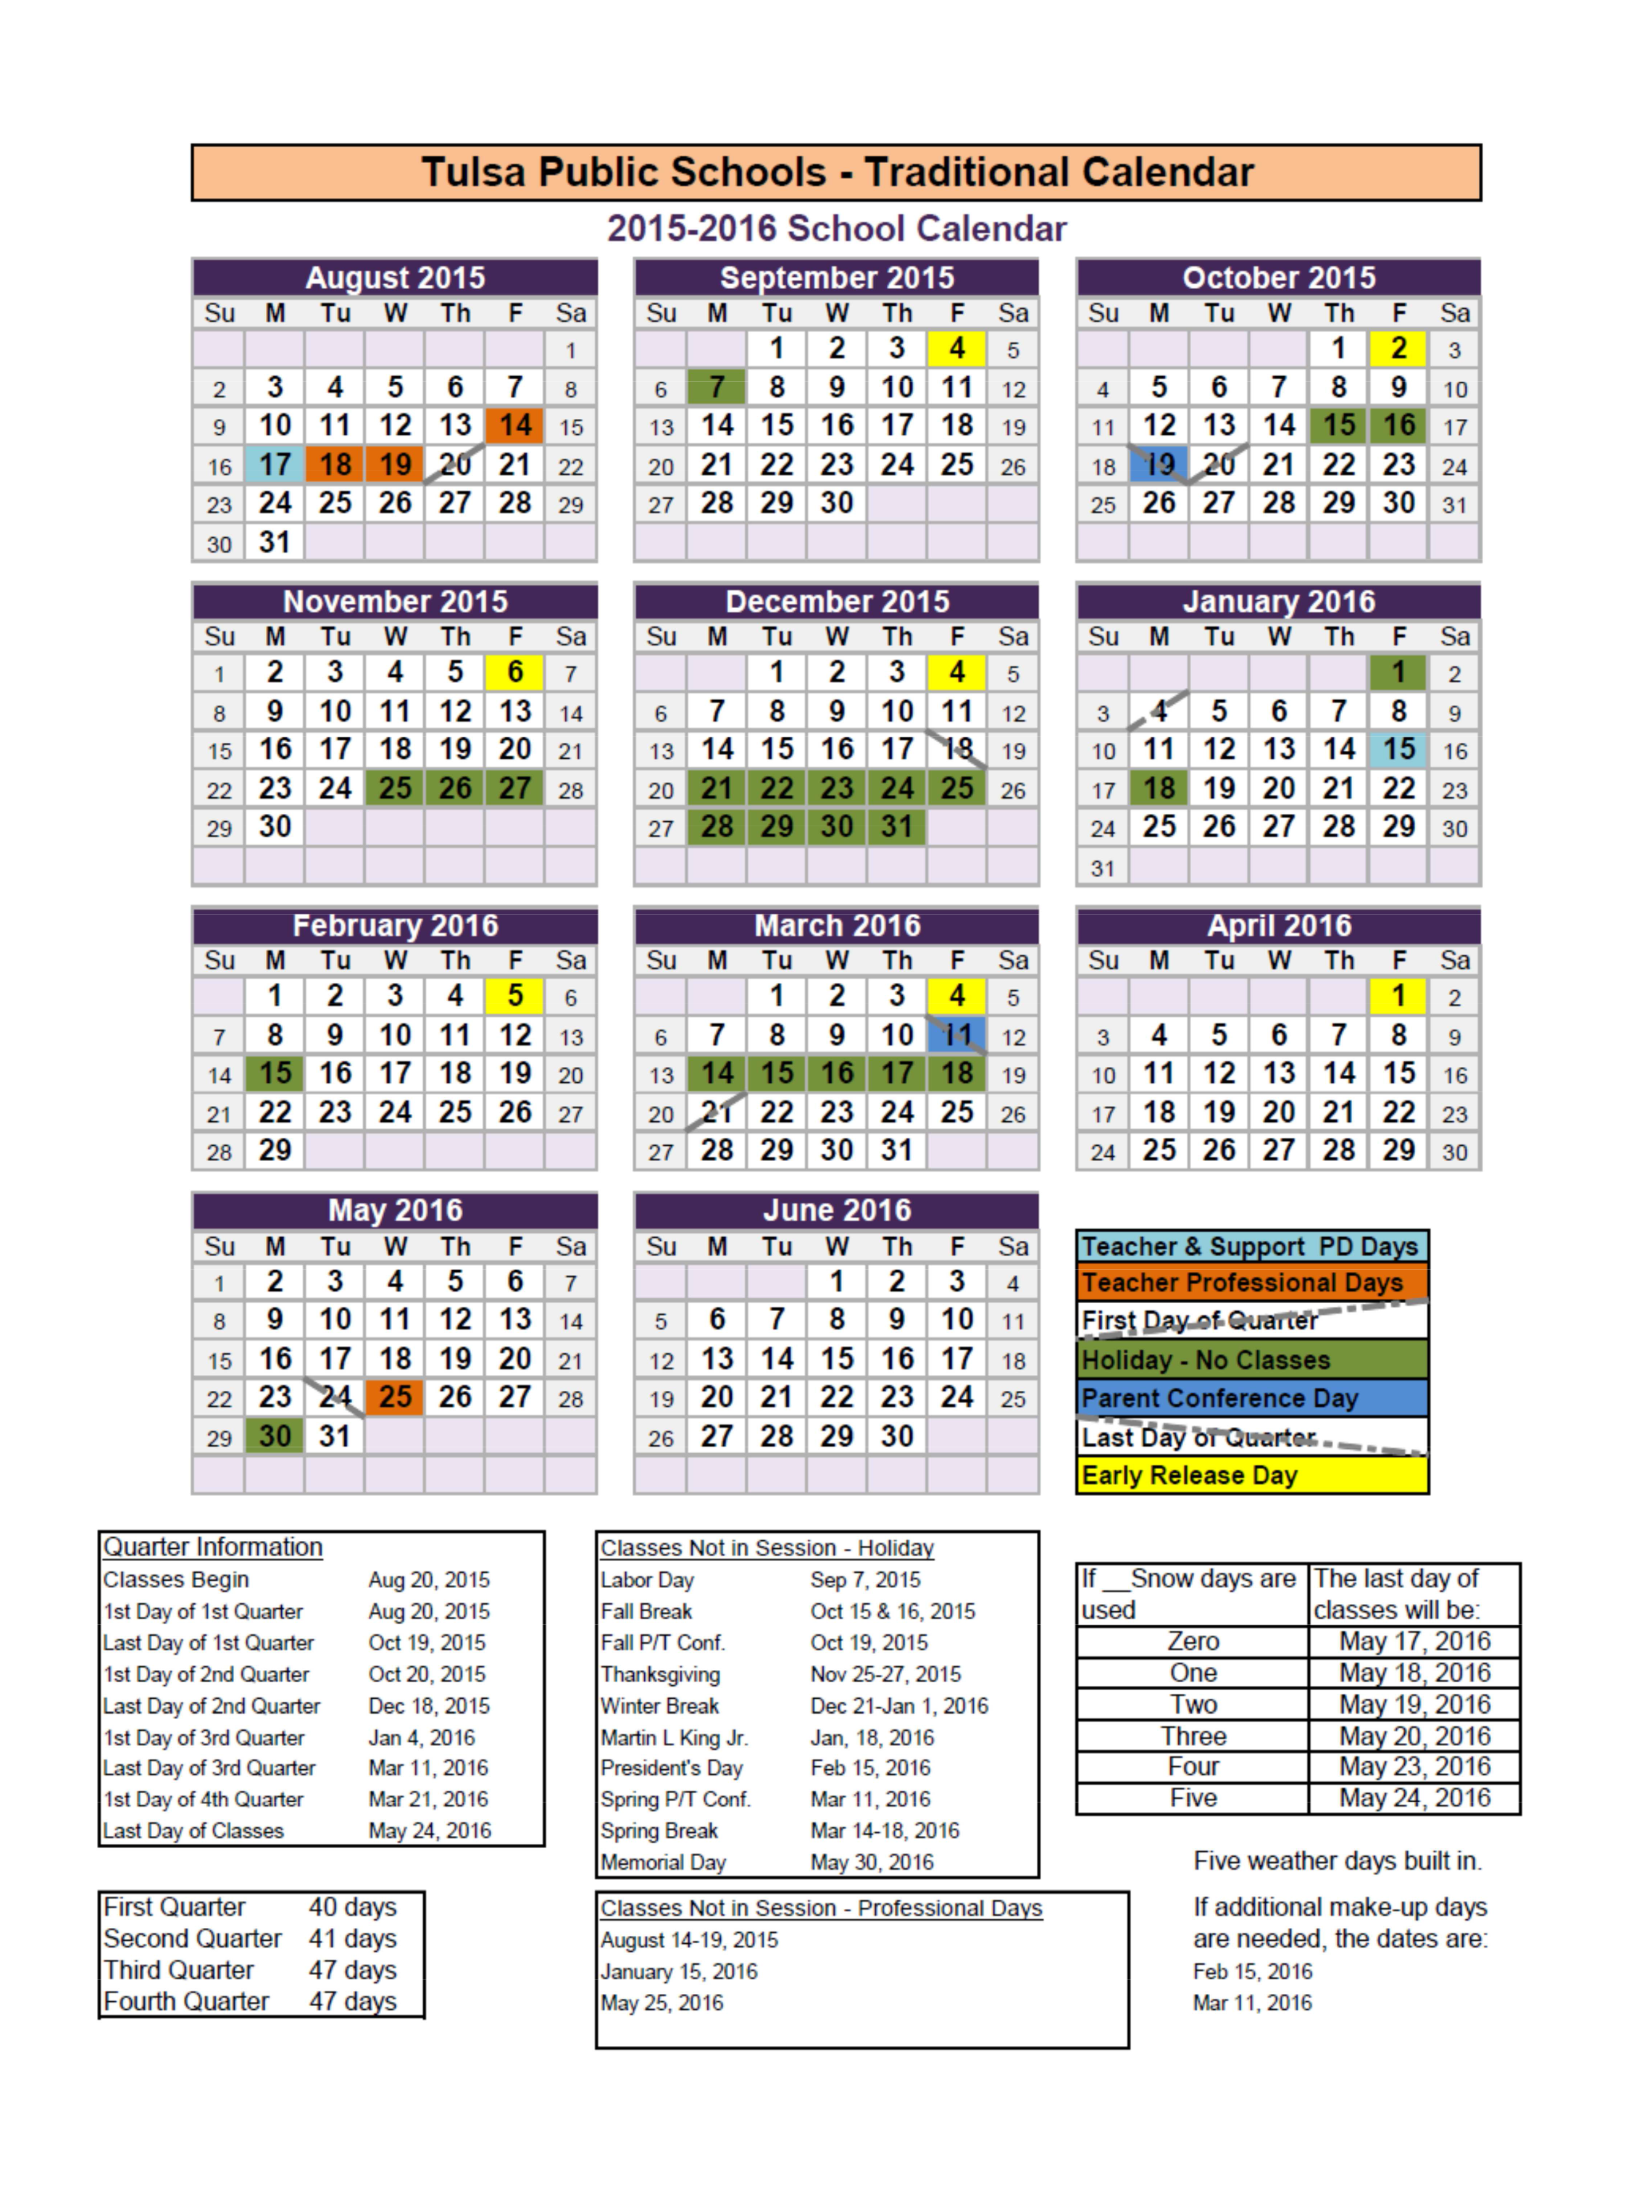 Tulsa Public Schools Finalize Calendar Years Through 2017 With Regard To Broken Arrow Public Schools Calendar